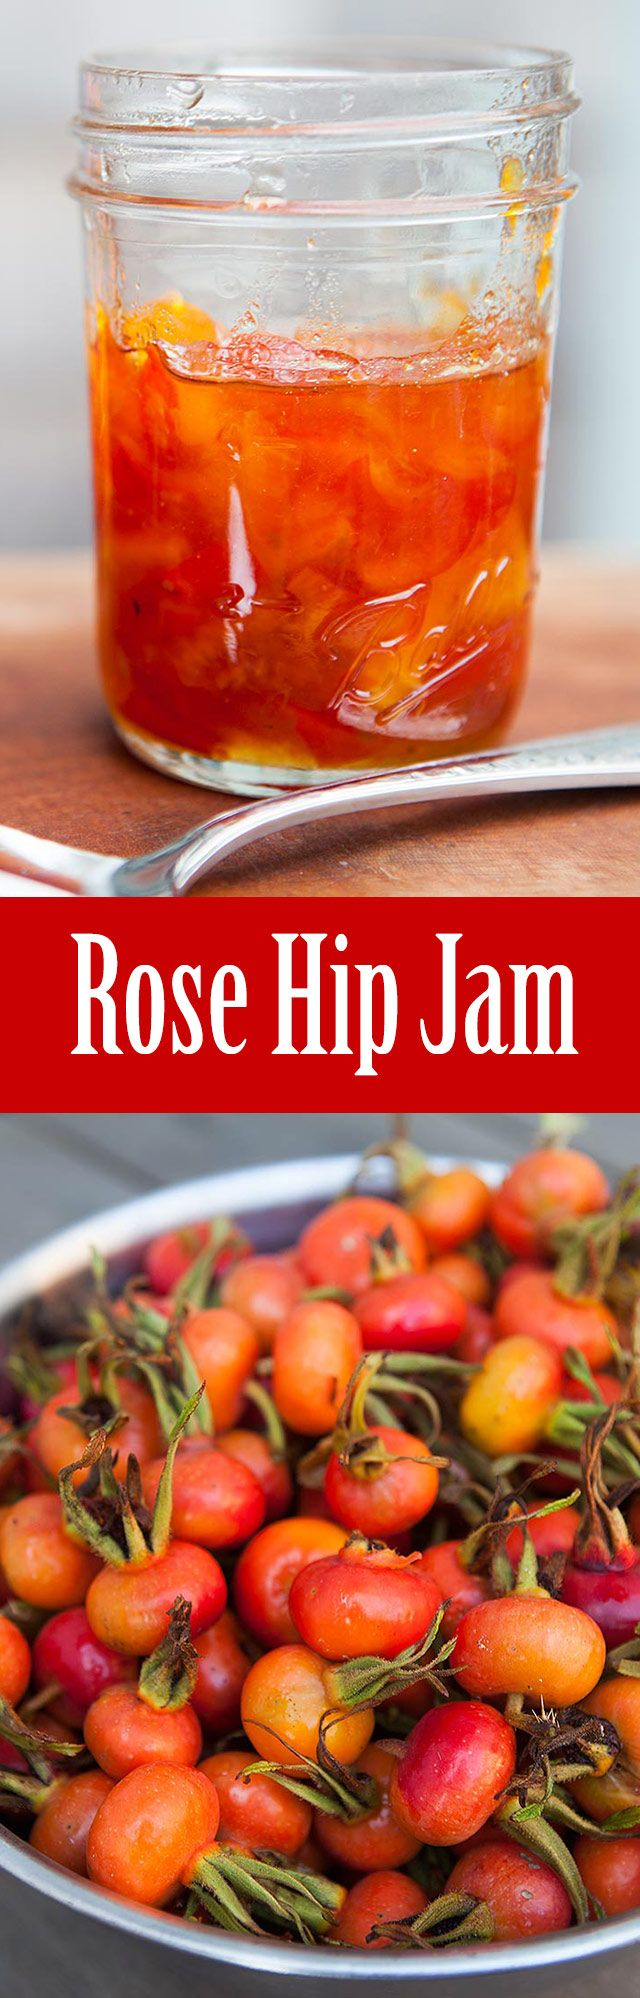 Rose Hip Jam ~ Marmalade-style rose hip jam with rose hips, orange, apple, lemon, and sugar. ~ SimplyRecipes.com